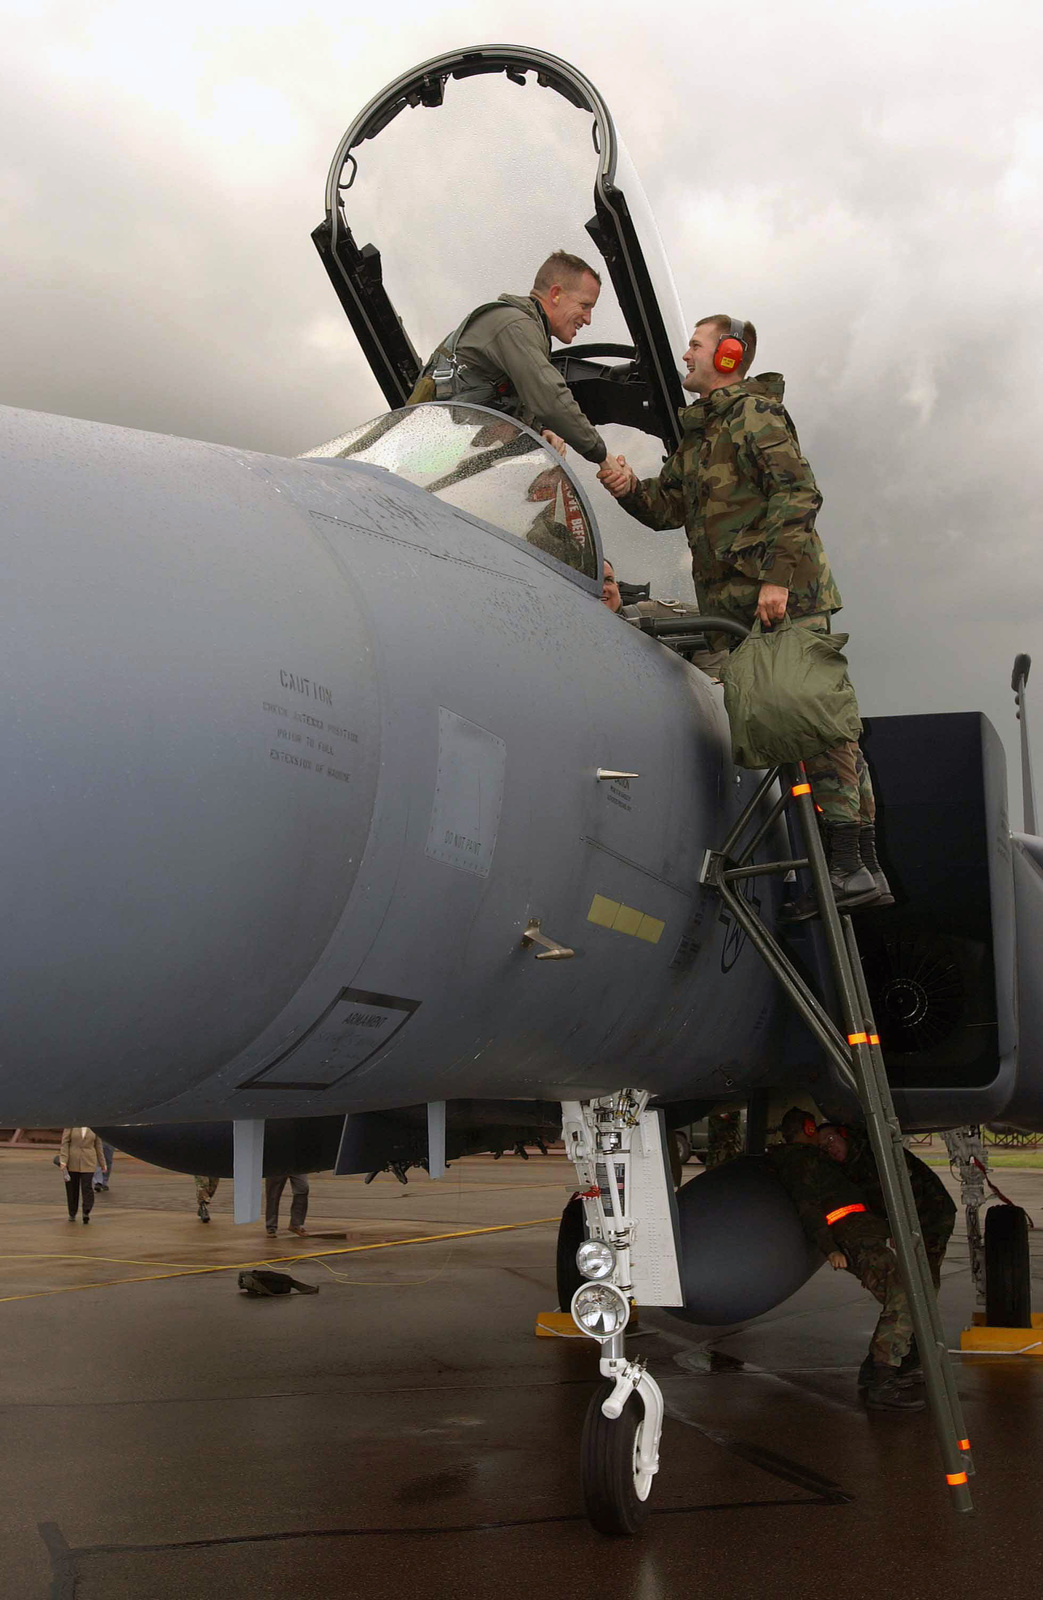 US Air Force (USAF) Lieutenant Colonel (LTC) Kent Laughbaum (left), Commander, 494th Fighter Squadron (FS), is assisted by an unidentified Crew CHIEF from the 48th Aircraft Maintenance Squadron (AMXS), 48th Fighter Wing (FW), as he exits a USAF F-15E Strike Eagle aircraft, on the flight line at Royal Air Force (RAF) Lakenheath, United Kingdom (UK). Two new Strike Eagle aircraft were flown over by 494th FS aircrews and will be assigned to the unit